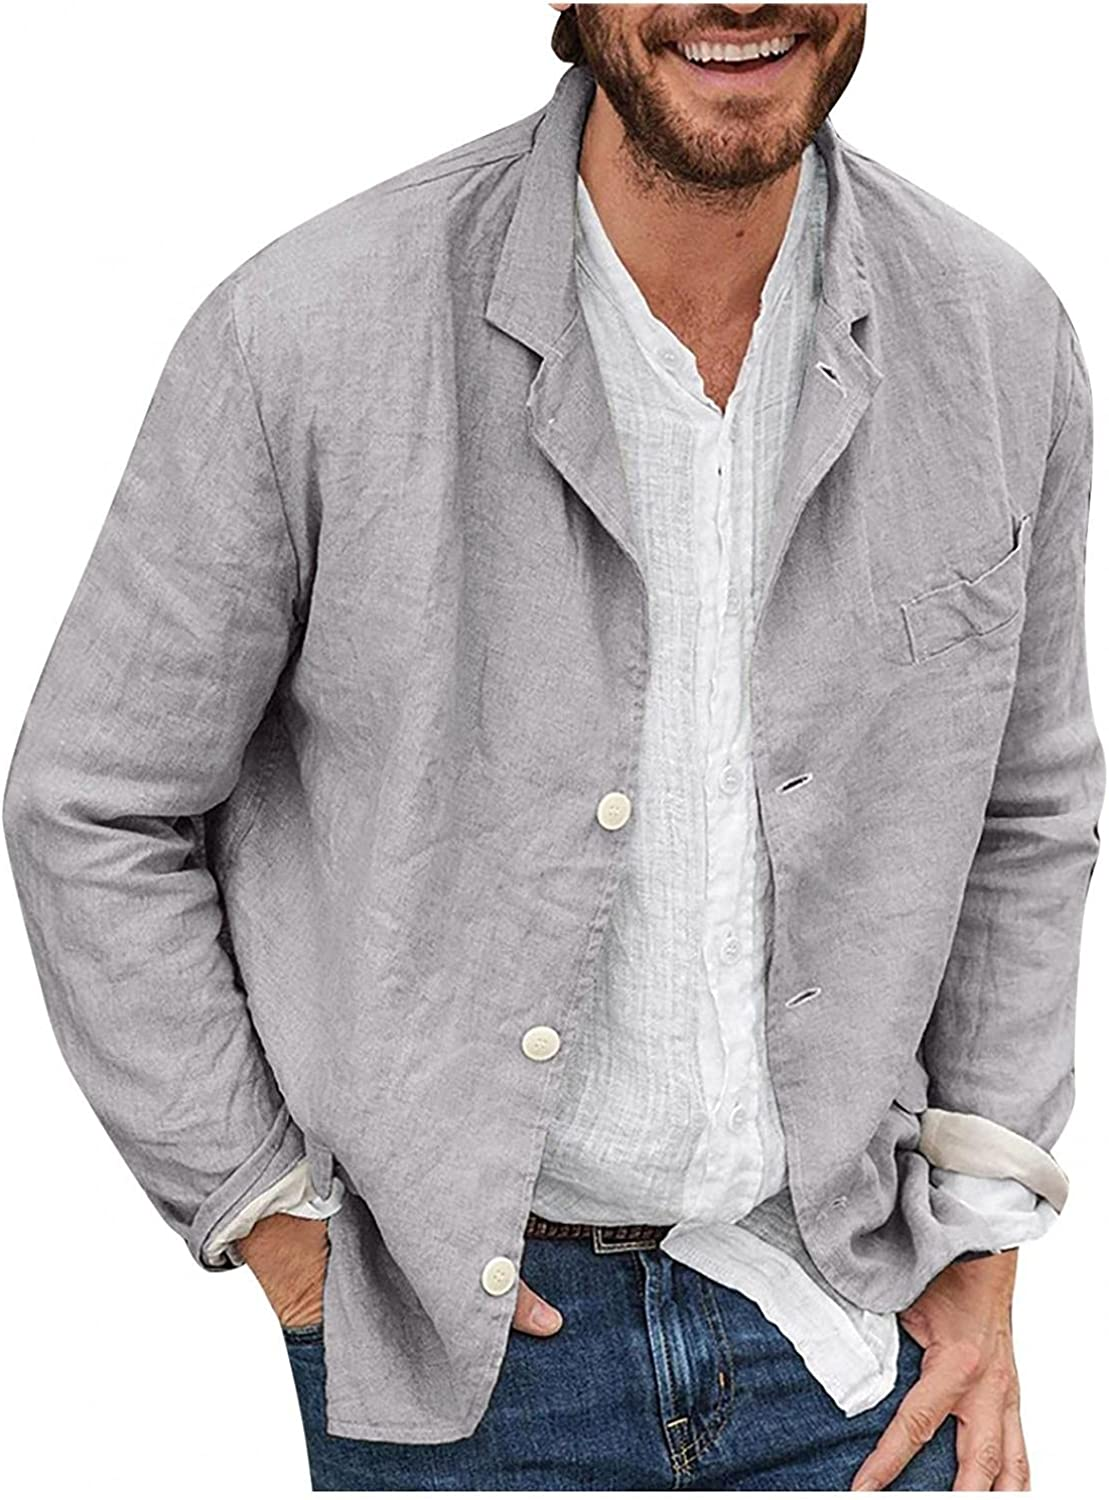 JSPOYOU Mens Cotton Linen Shirt top Long Sleeve Button Down Loose Casual Jacket Coats Fashion Solid Color Blouse Tops